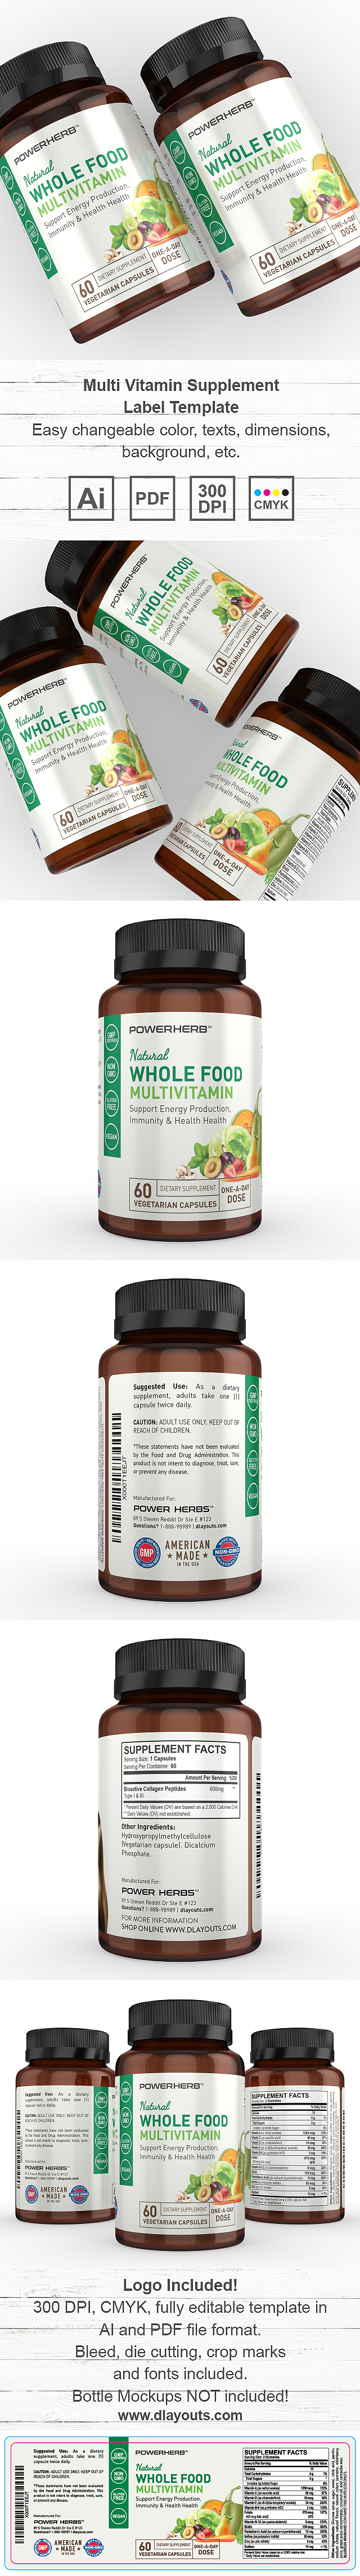 Multi Vitamin Supplement Label Template